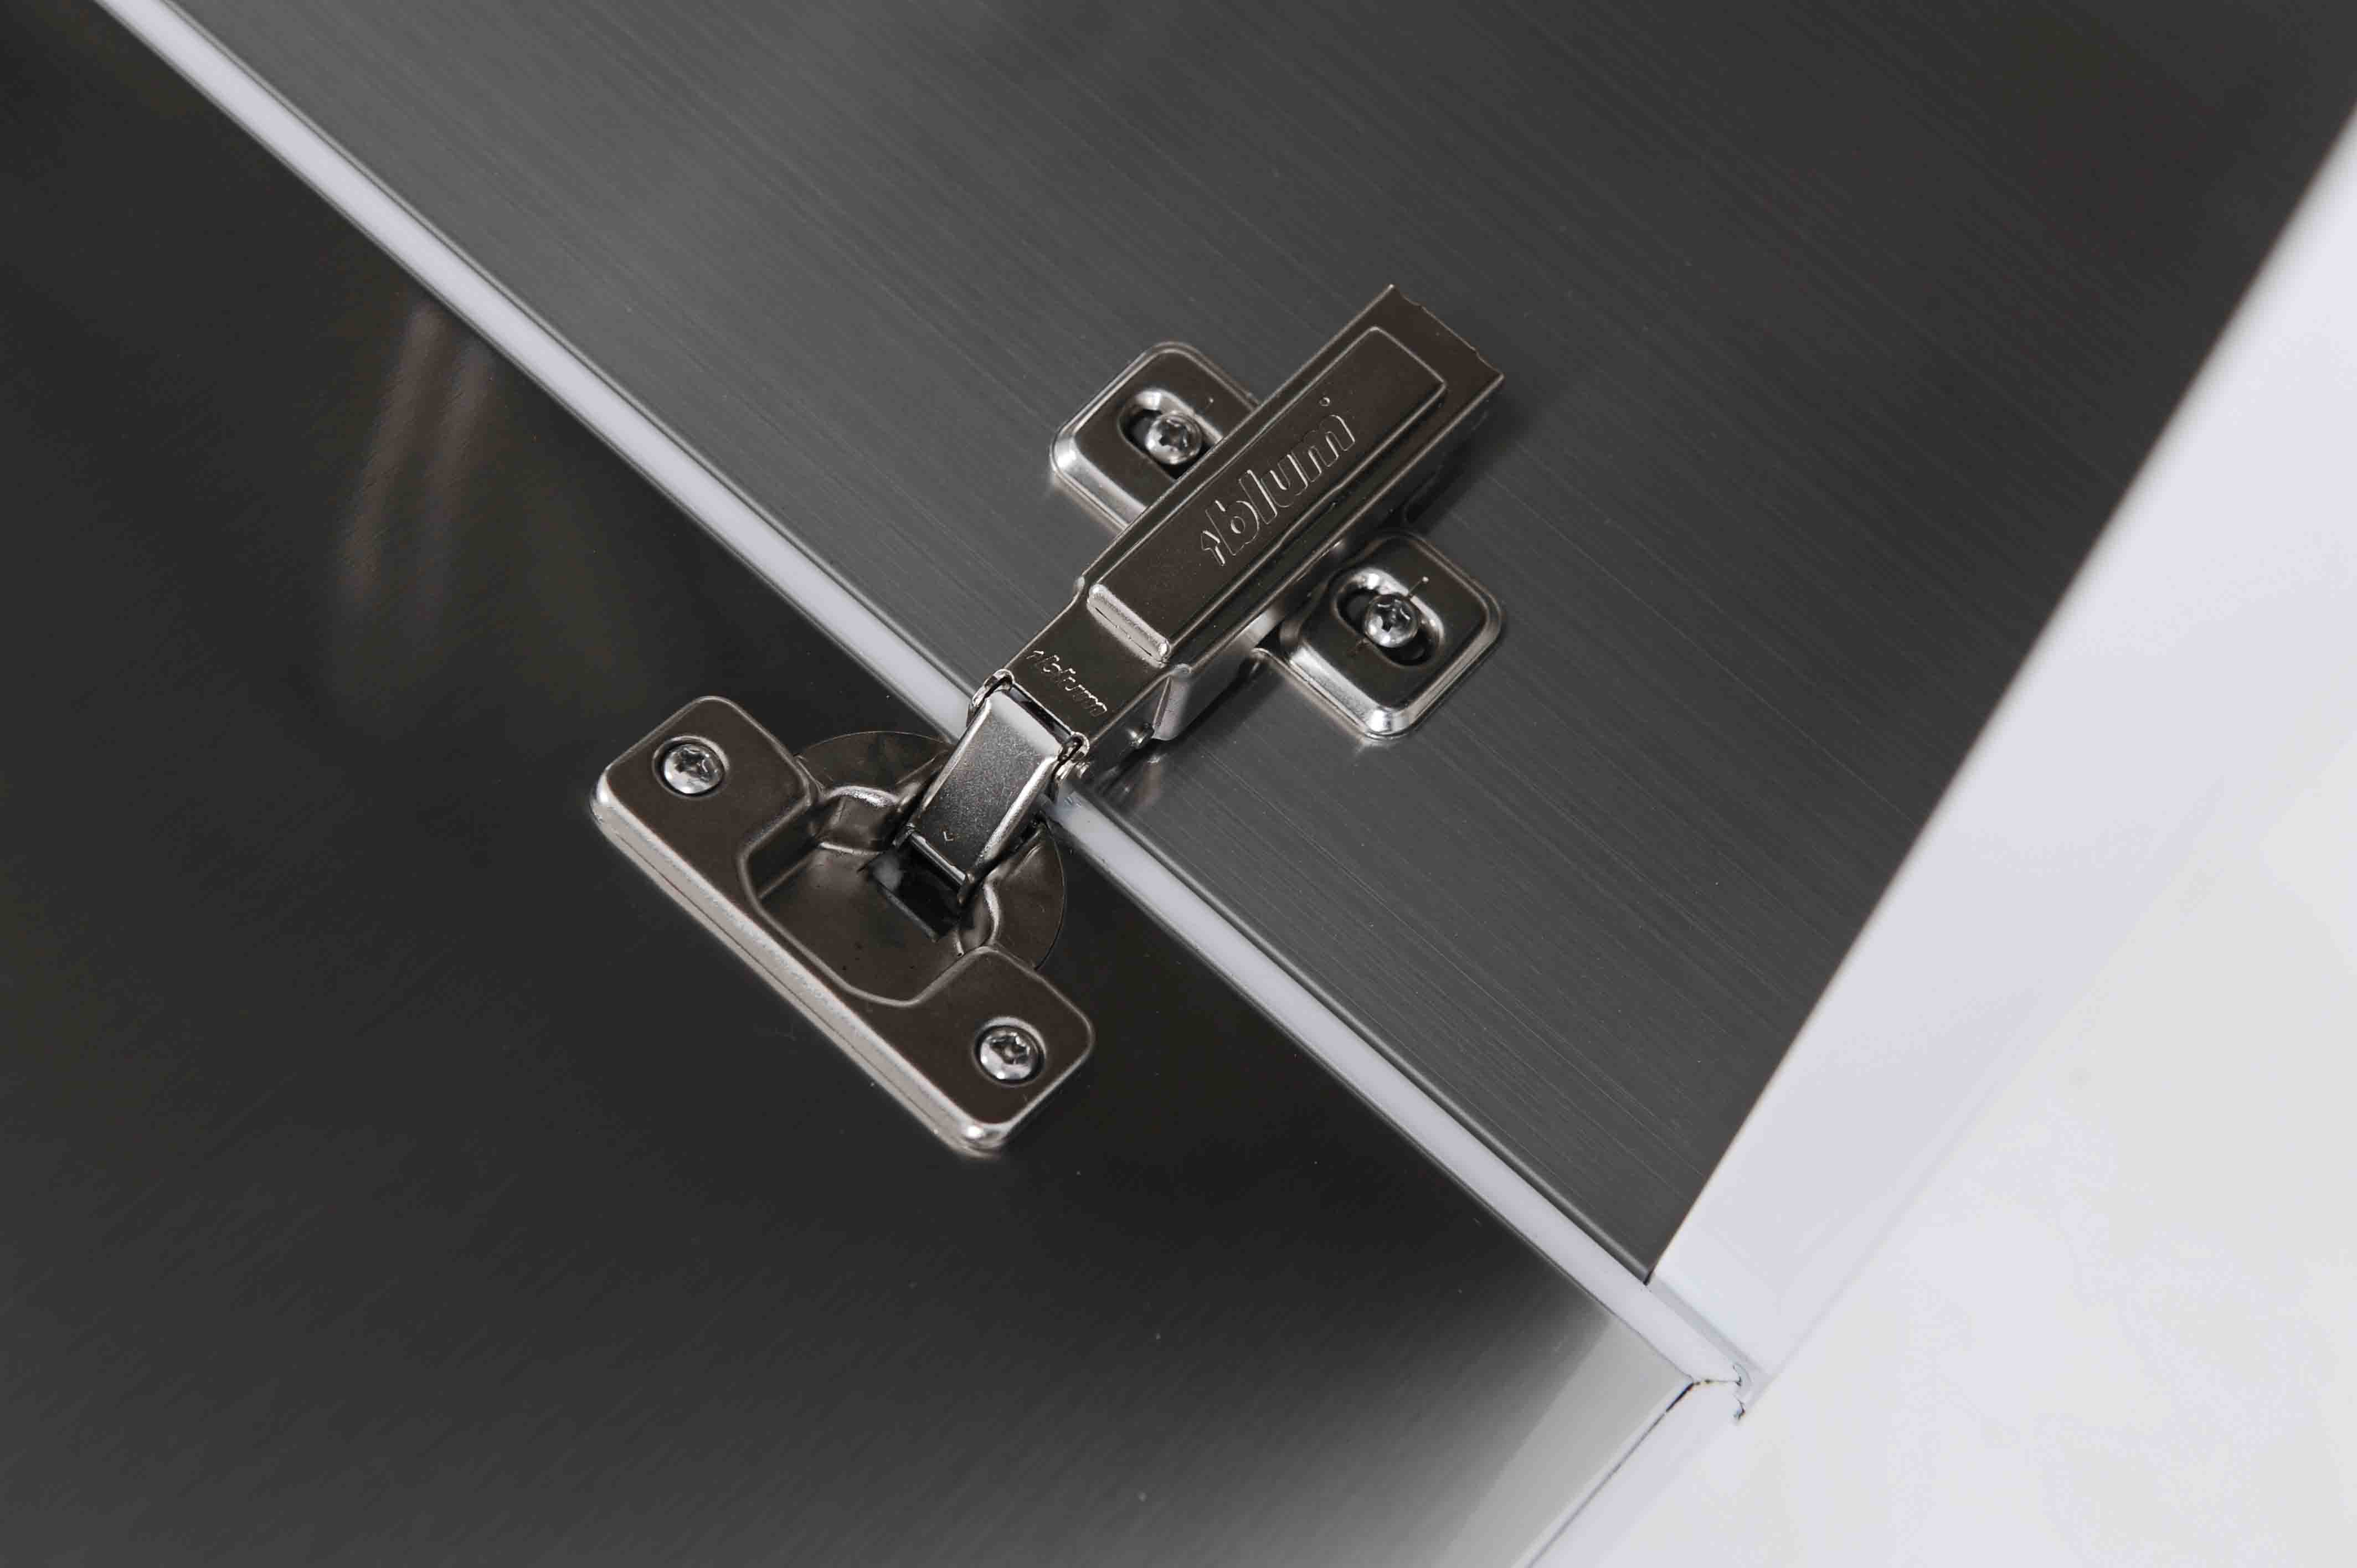 Rubine 60cm stainless steel bathroom cabinet rbf 1164d1 for Bathroom cabinets 60cm